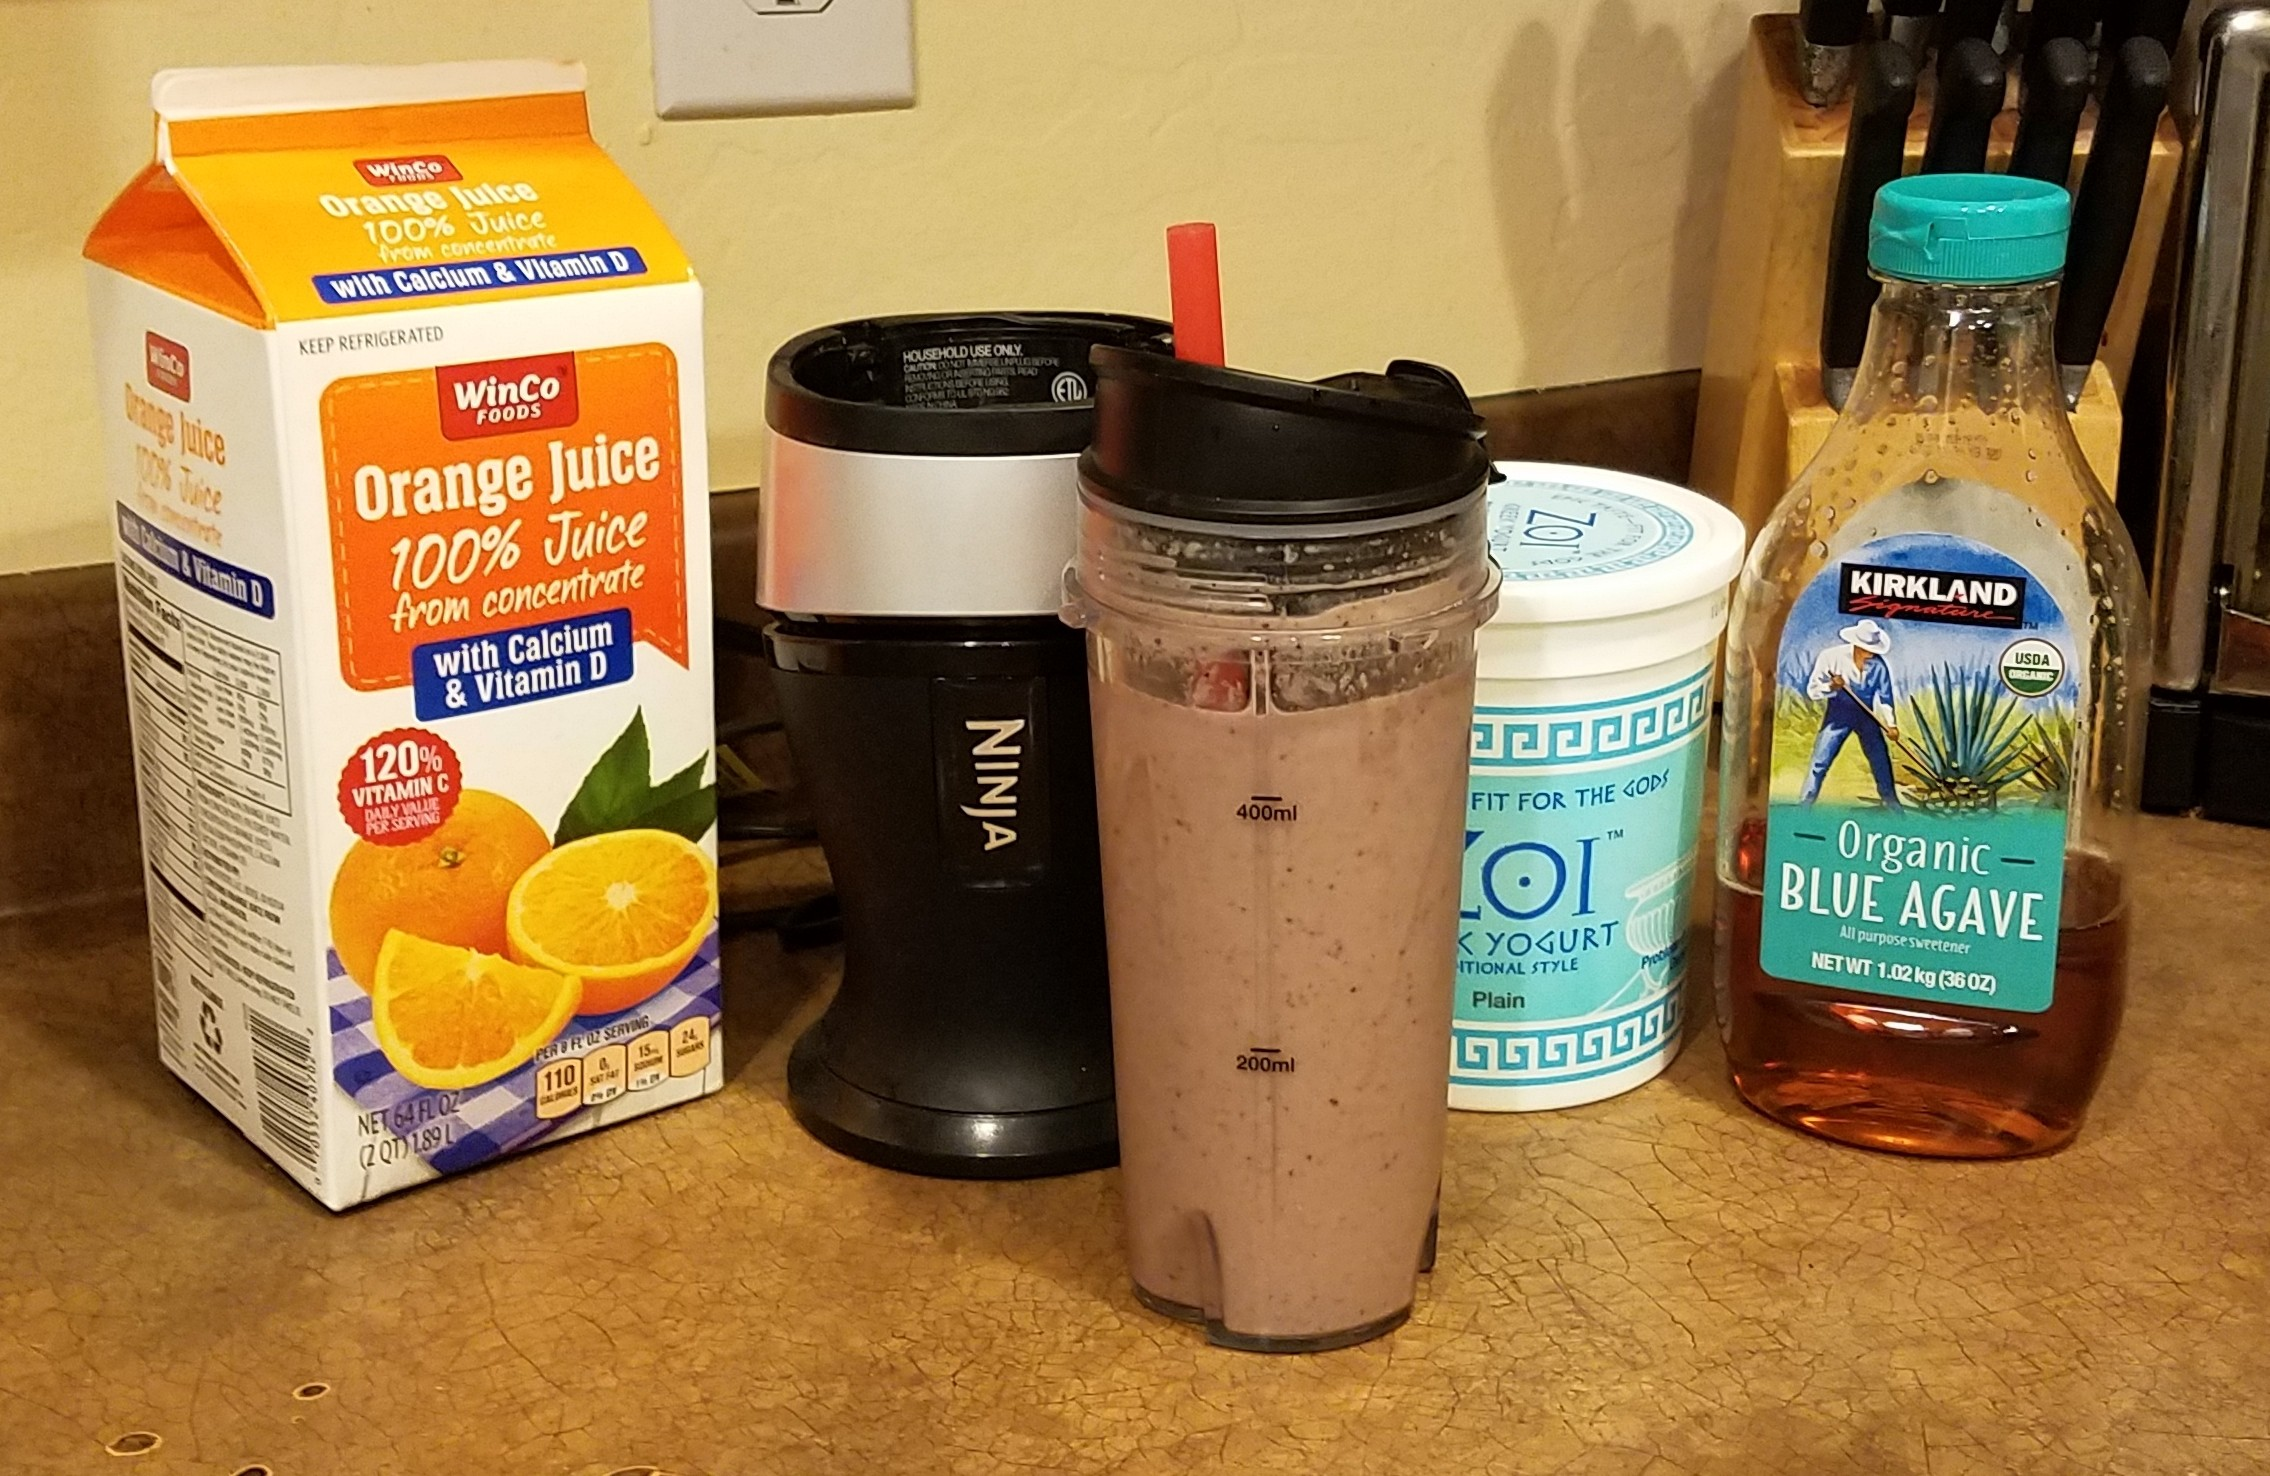 Ultra Smoothie - Blueberries Strawberries Peaches Bananas Spinach Egg Orange juice Greek yogurt Agave nectar #smoothie #natural #healthy